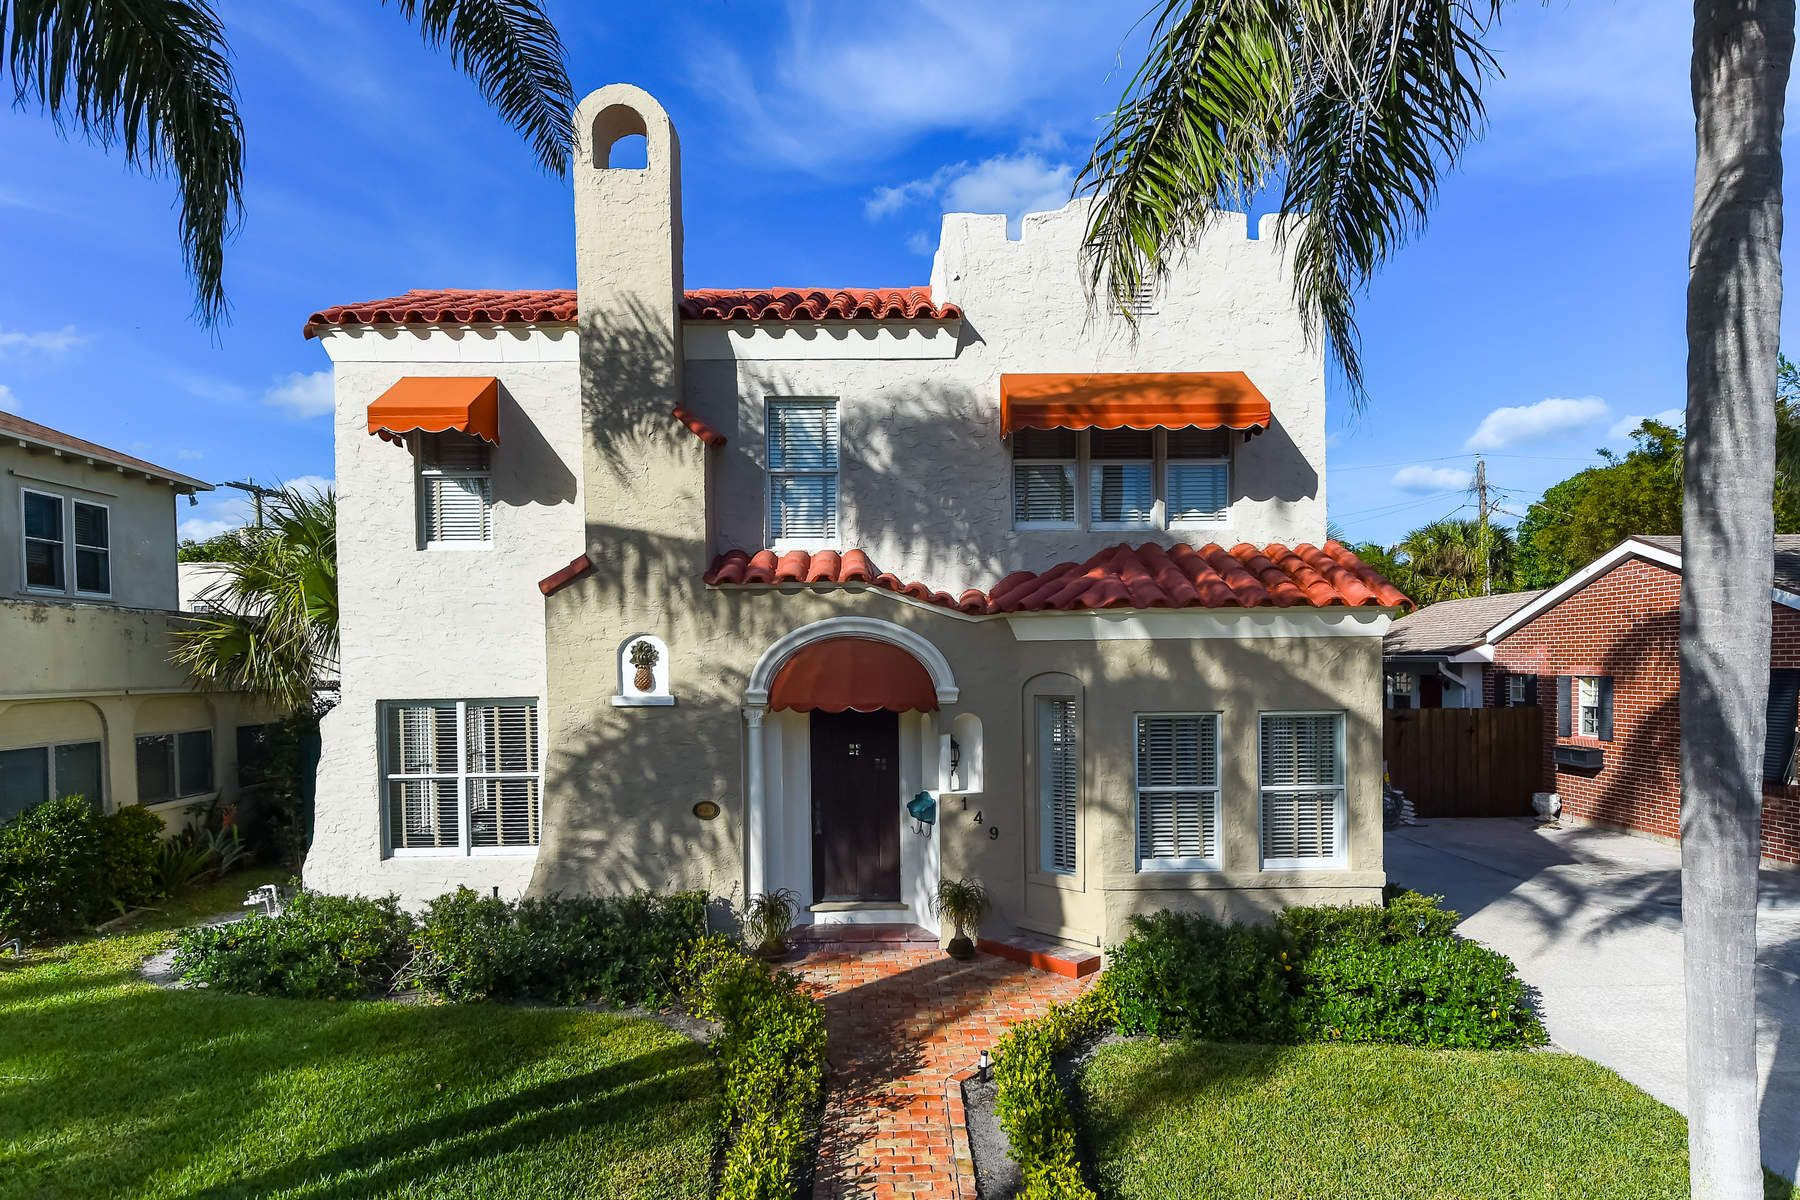 Single Family Home for Sale at Pristine Mediterranean Revival Style 149 Edgewood Dr West Palm Beach, Florida 33405 United States